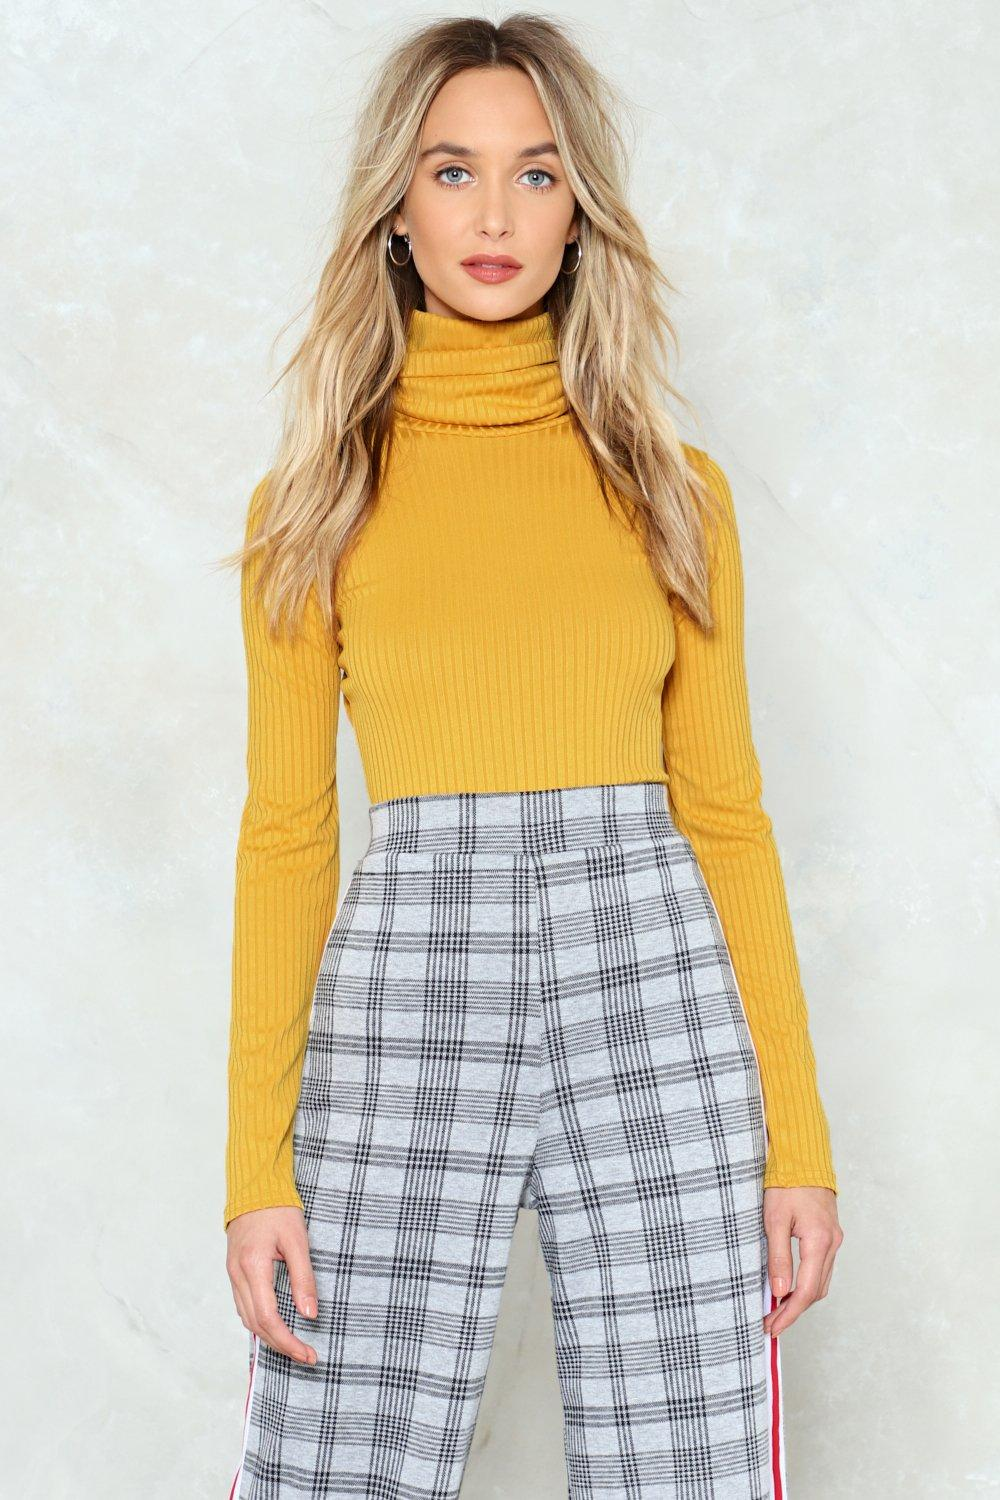 Got No Chill Turtleneck Sweater Shop Clothes At Nasty Gal